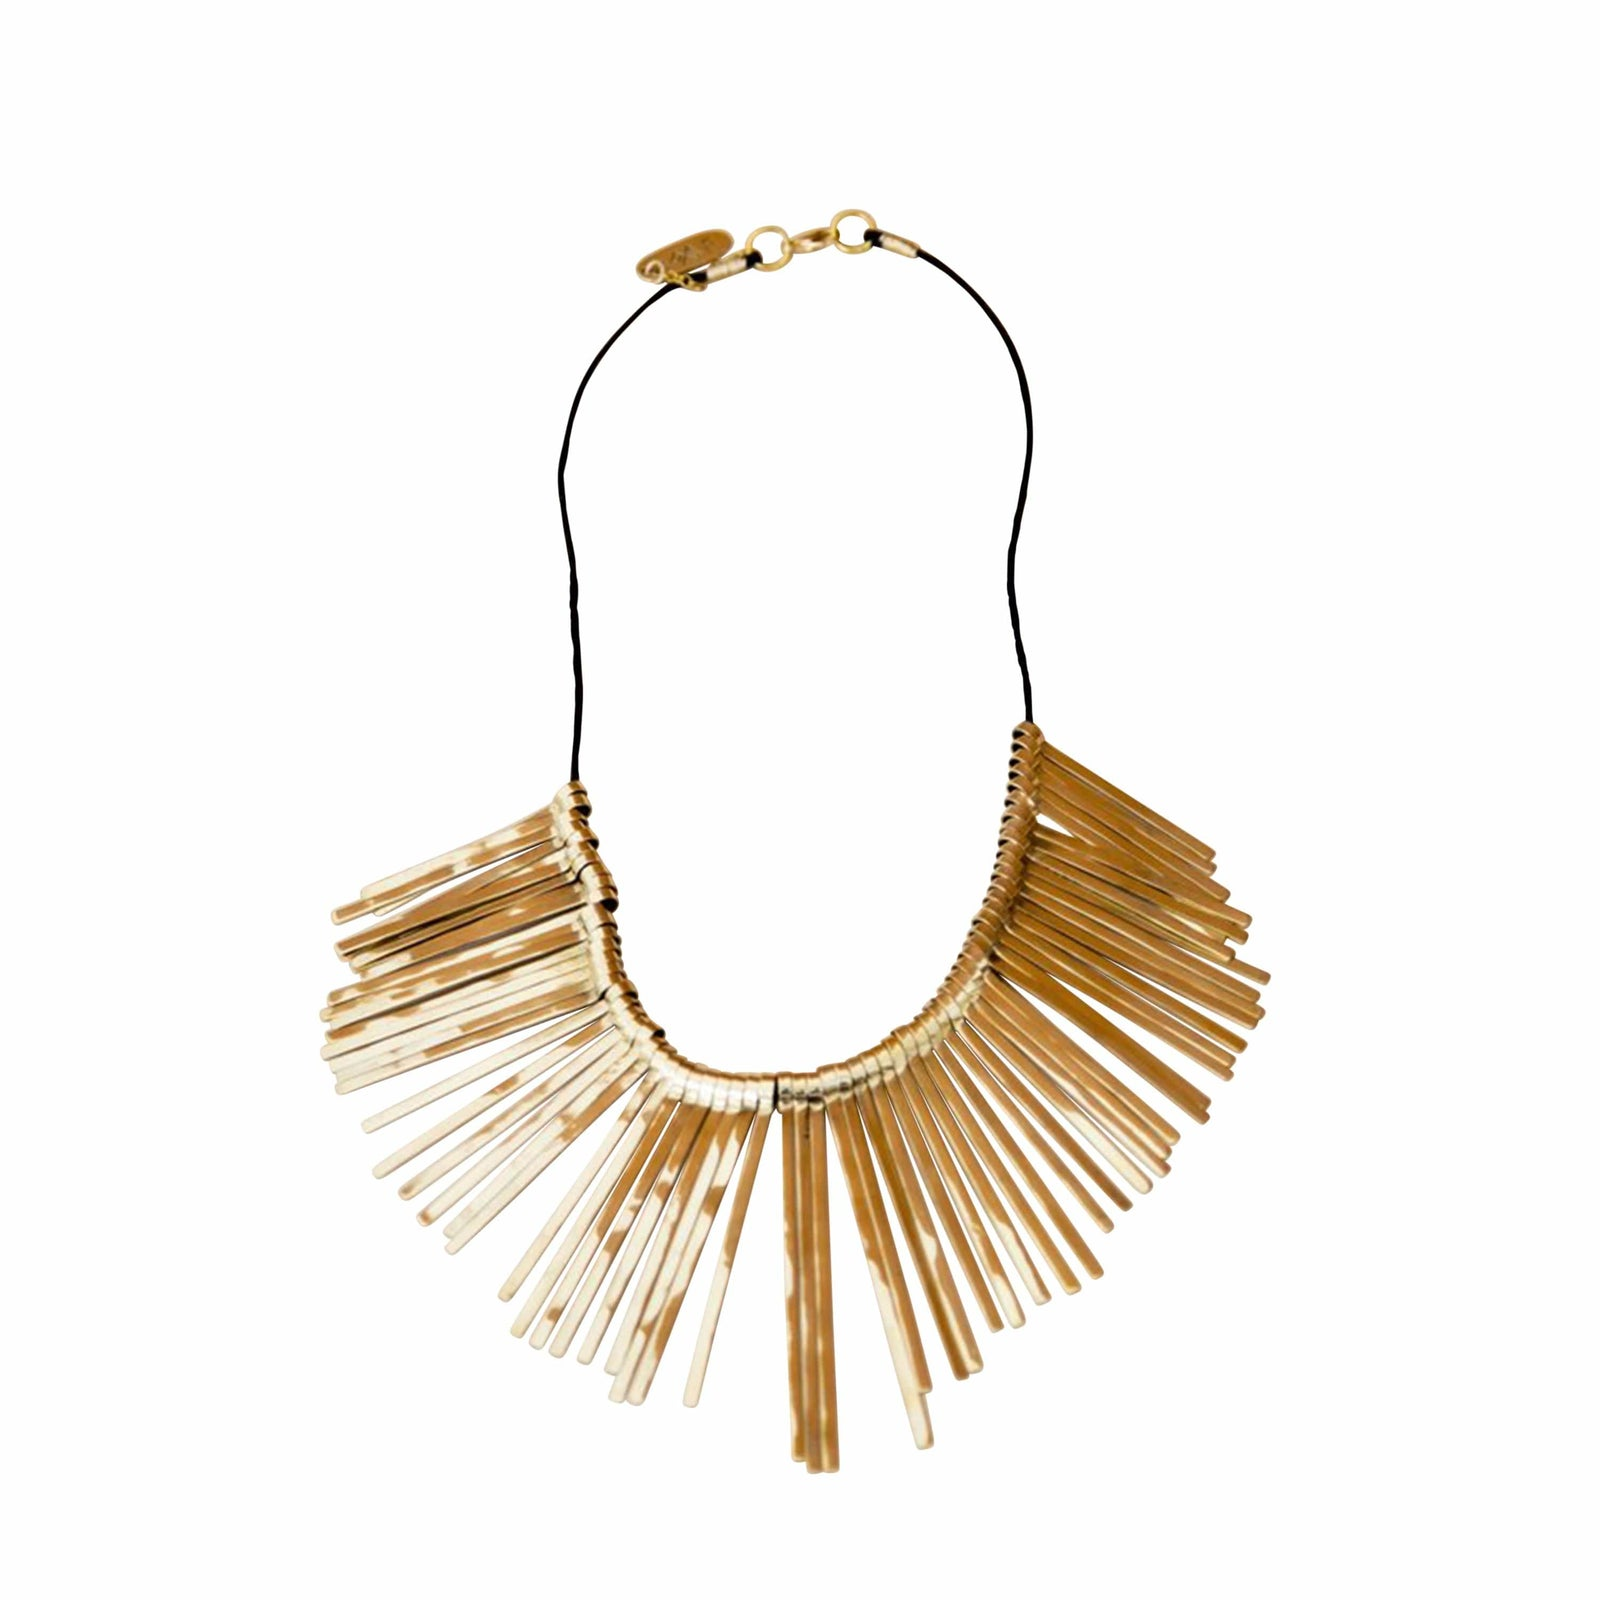 Rose & Fitzgerald Jewelry Gold Spikes Necklace